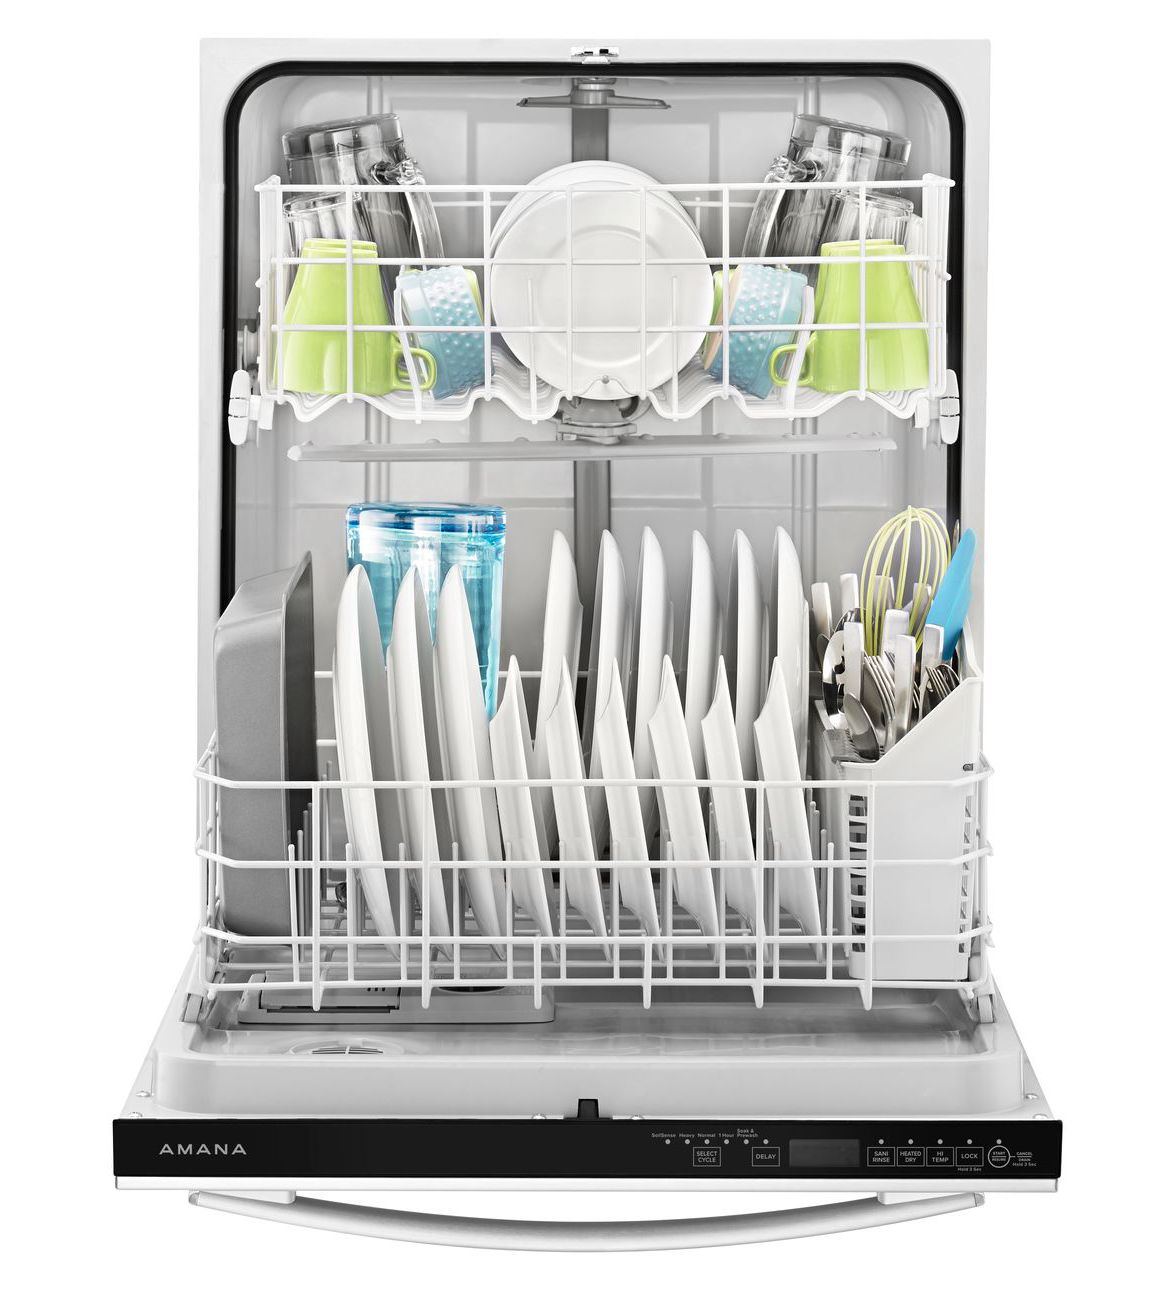 Adb1500adw Amana 174 Tall Tub Dishwasher With Fully